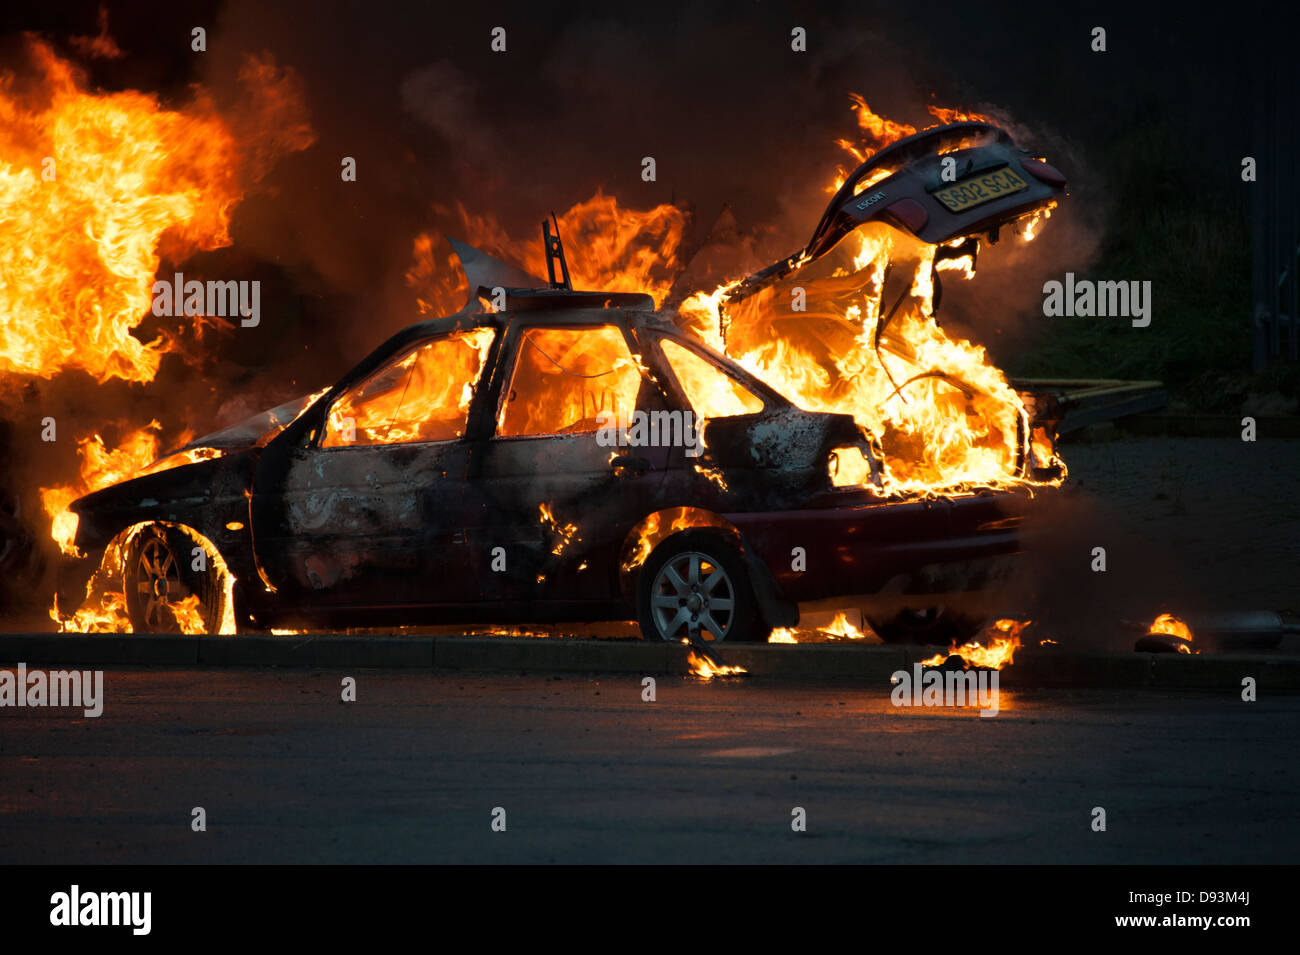 Car on Fire Blazing Flames Arson - Stock Image